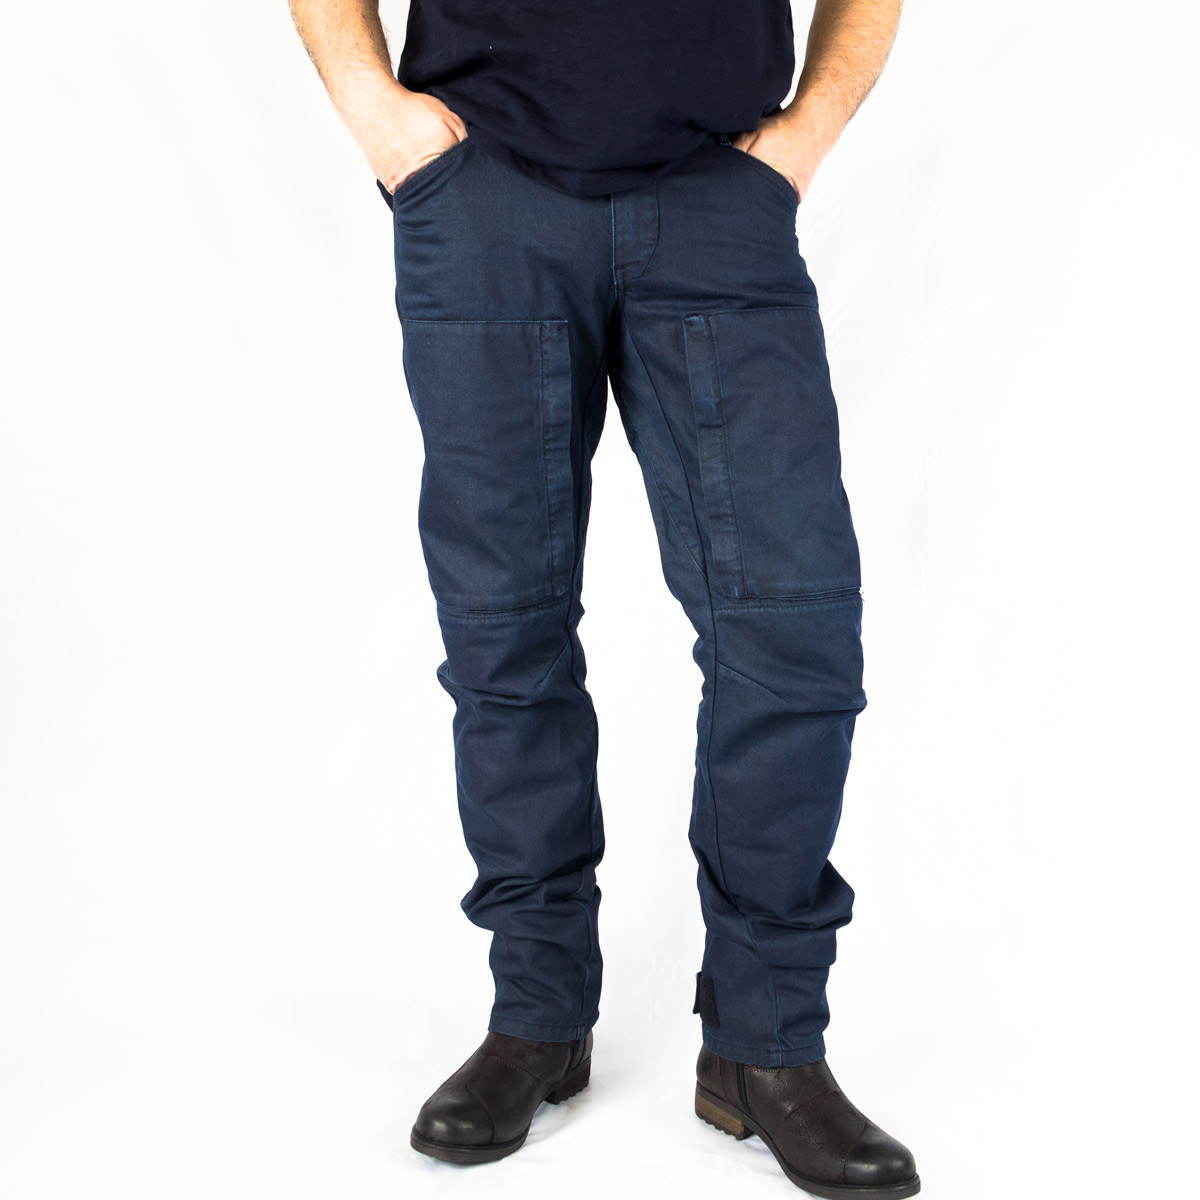 Rev It! Recon Straight Jeans Reg 34 Leg - Denim Blue